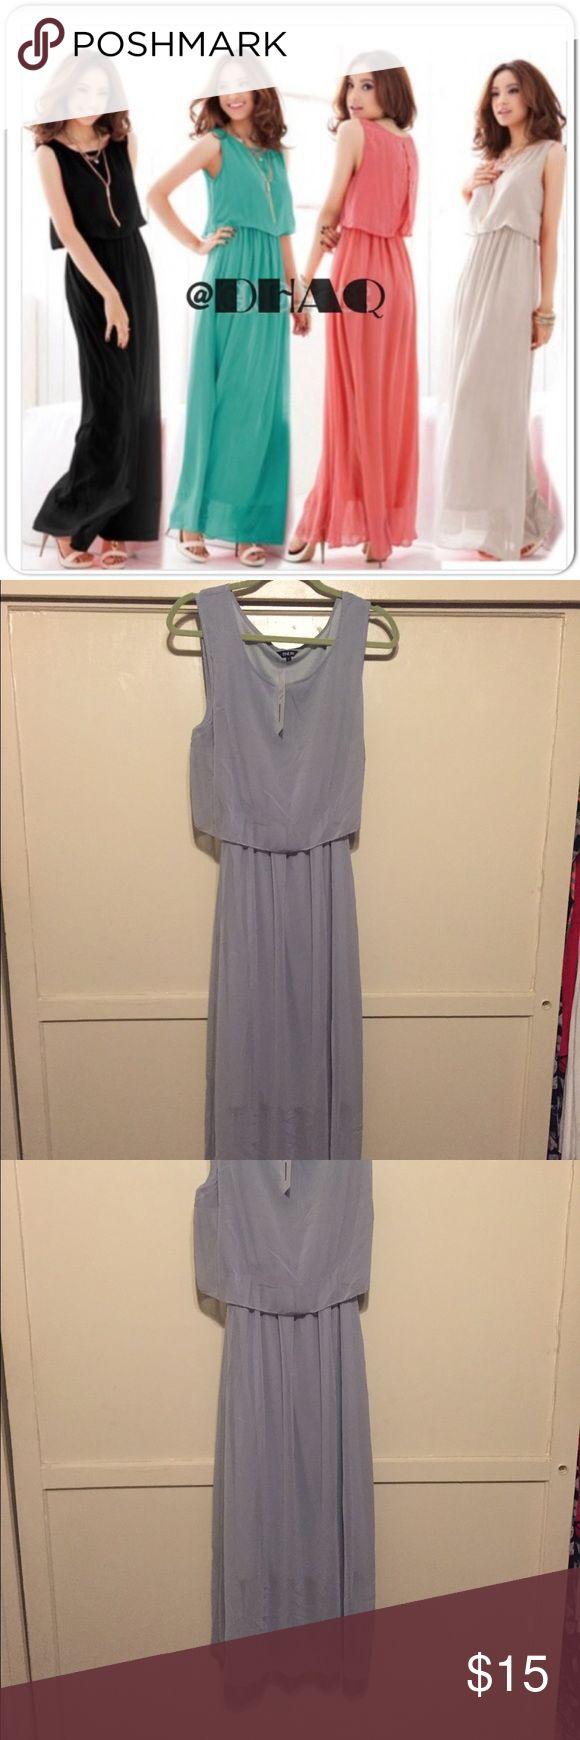 NWT chiffon maxi dress Gray chiffon maxi dress. Very pretty and flowy. Asian size large which is comparable to a US 4/6. New with tags. Dresses Maxi